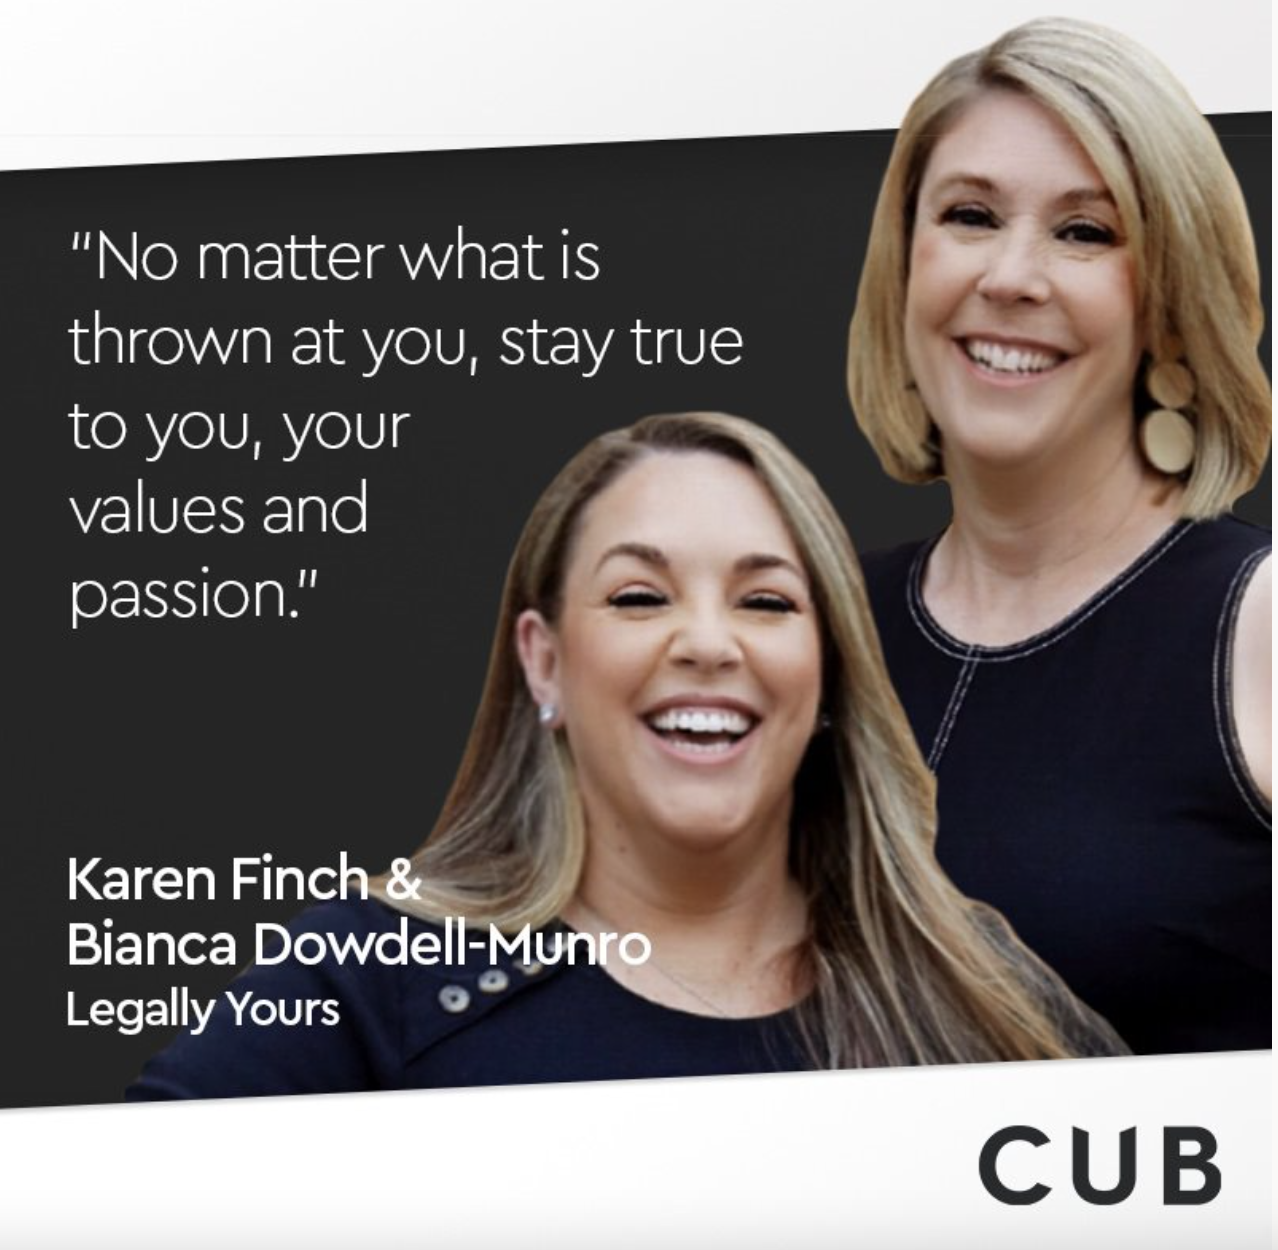 Catching Up with CUB Podcast – Karen and Bianca from Legally Yours & The Power of Empathy